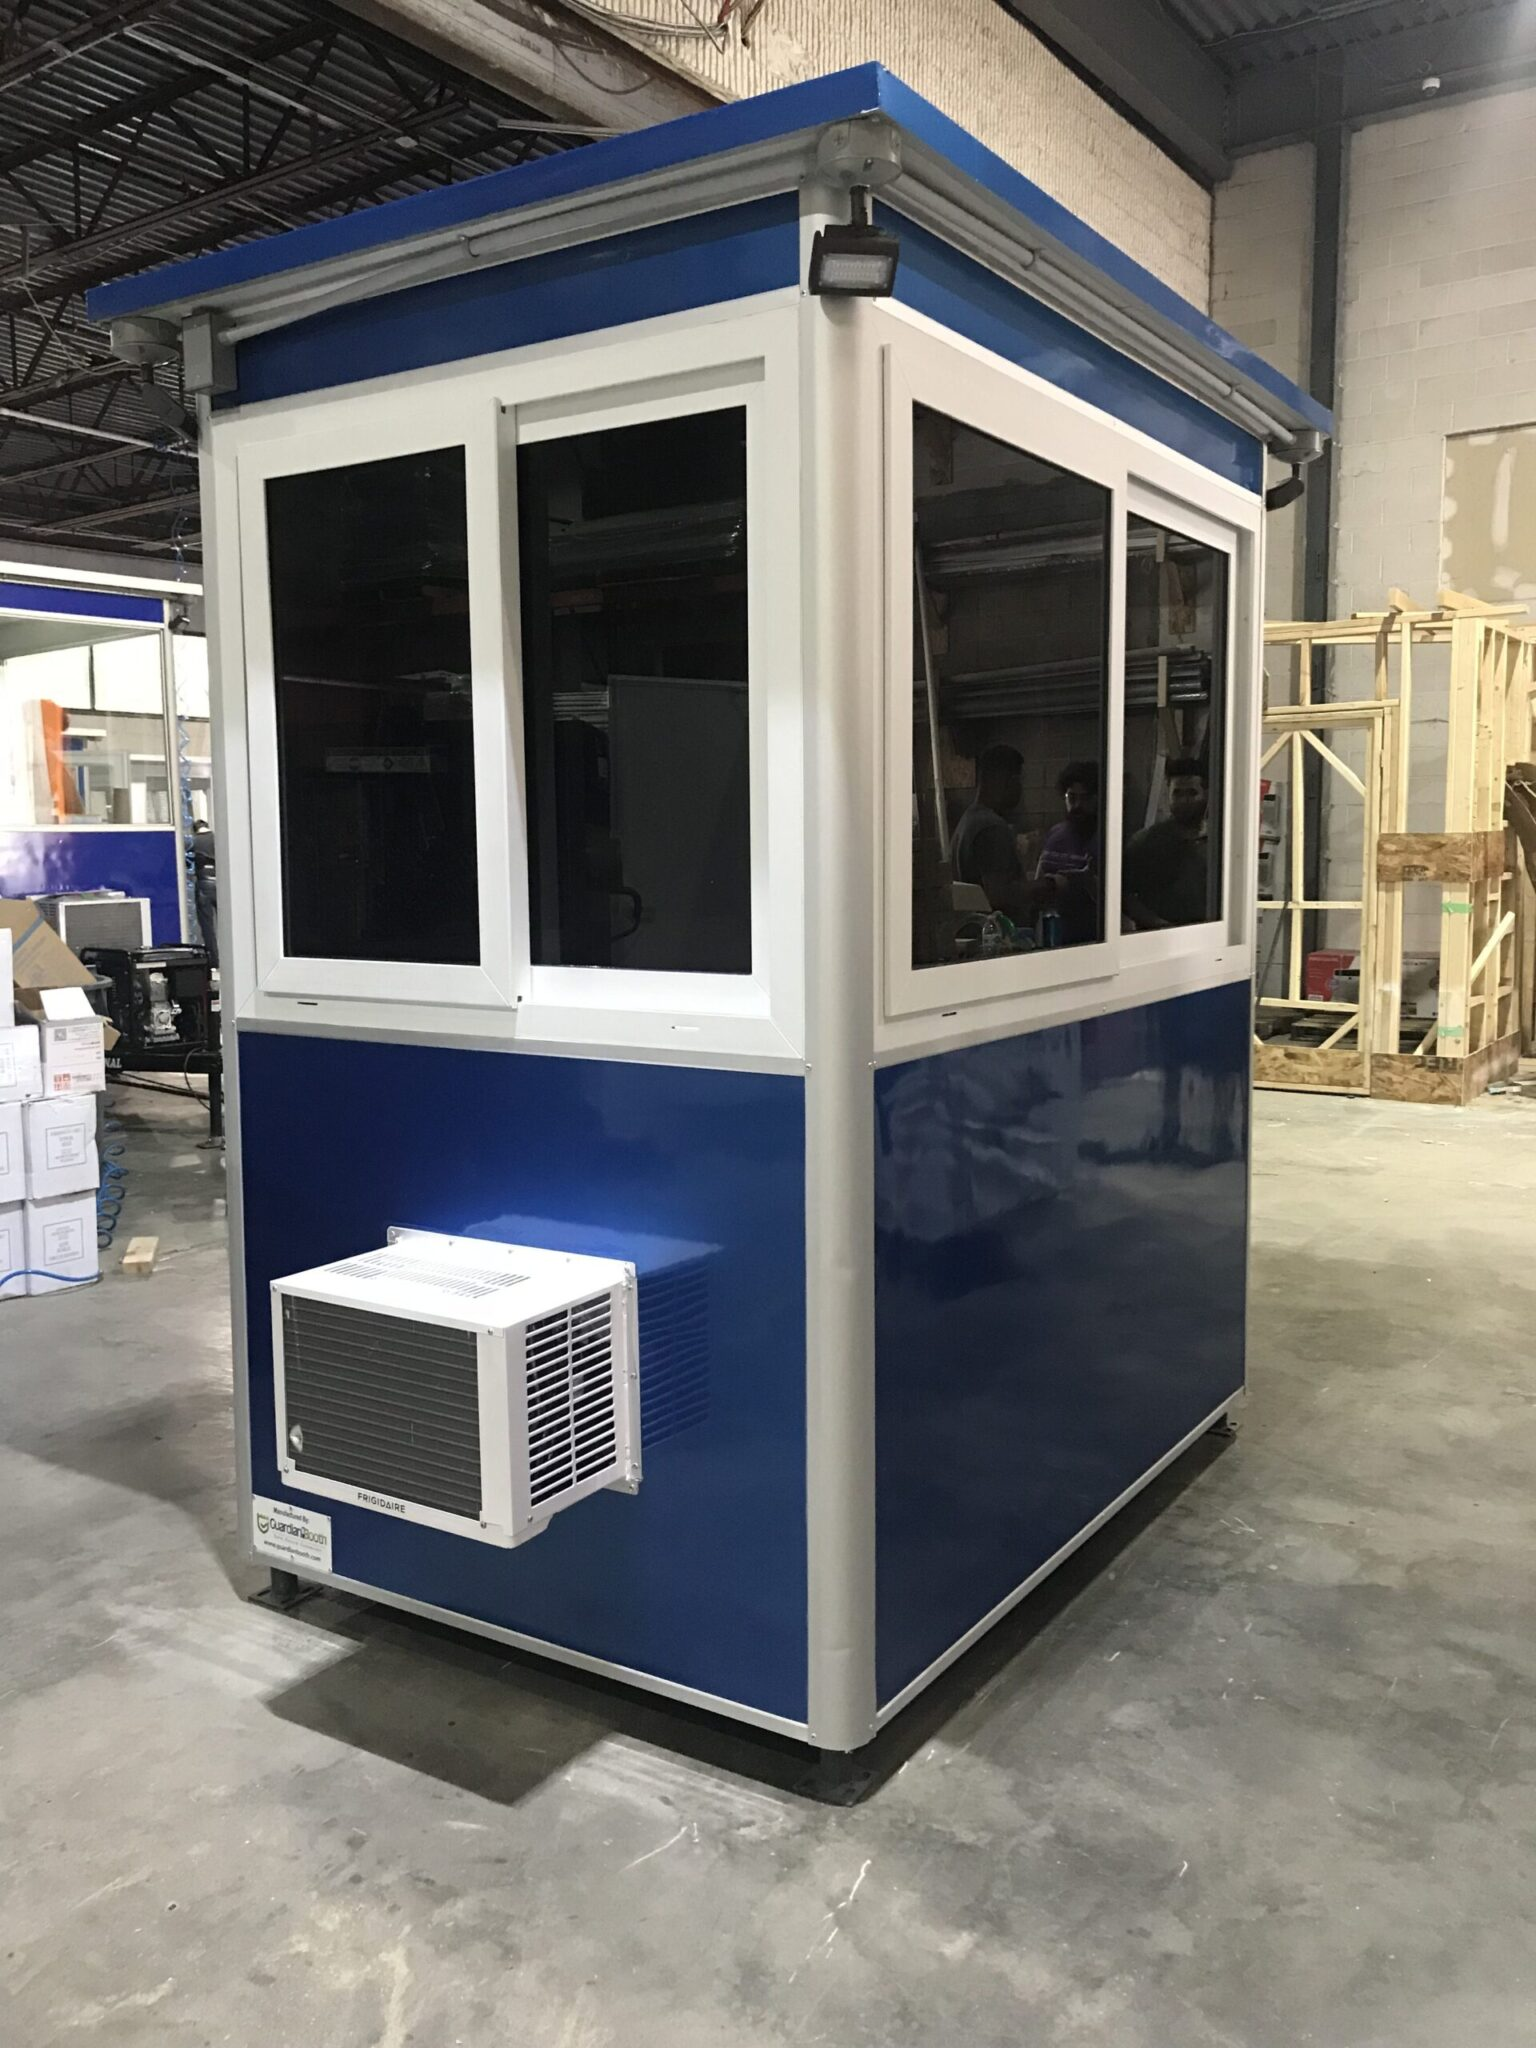 4x6 Security Guard Booth in Louisville, KY with Tinted Windows, Outside Spotlights, Custom Exterior Color, Built-in AC, and Key Hooks